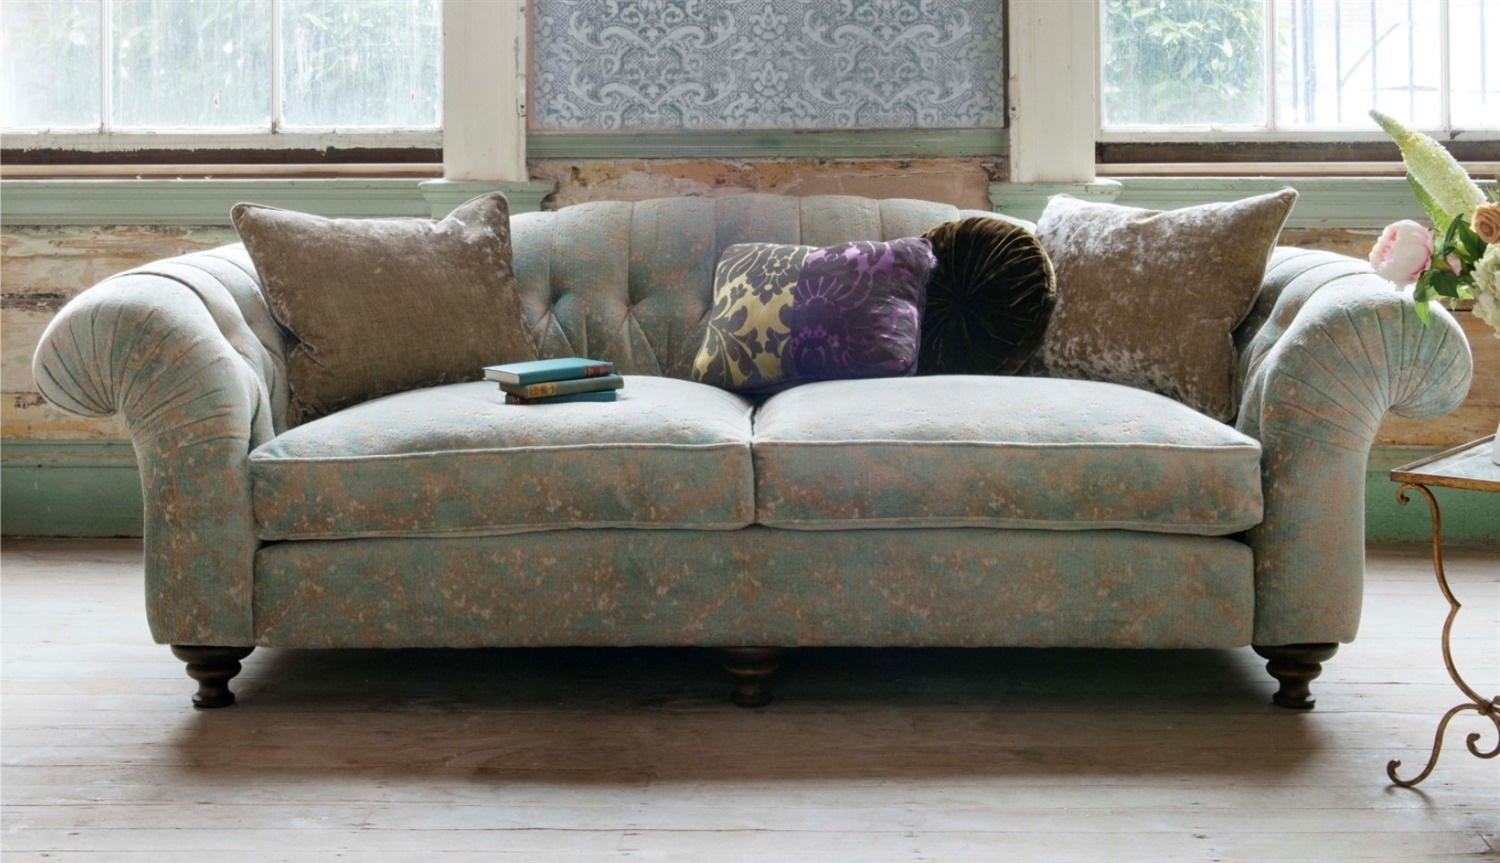 Sofas – Luxury Handcrafted British Fabric Sofas Pertaining To Luxury Sofas (Image 10 of 10)